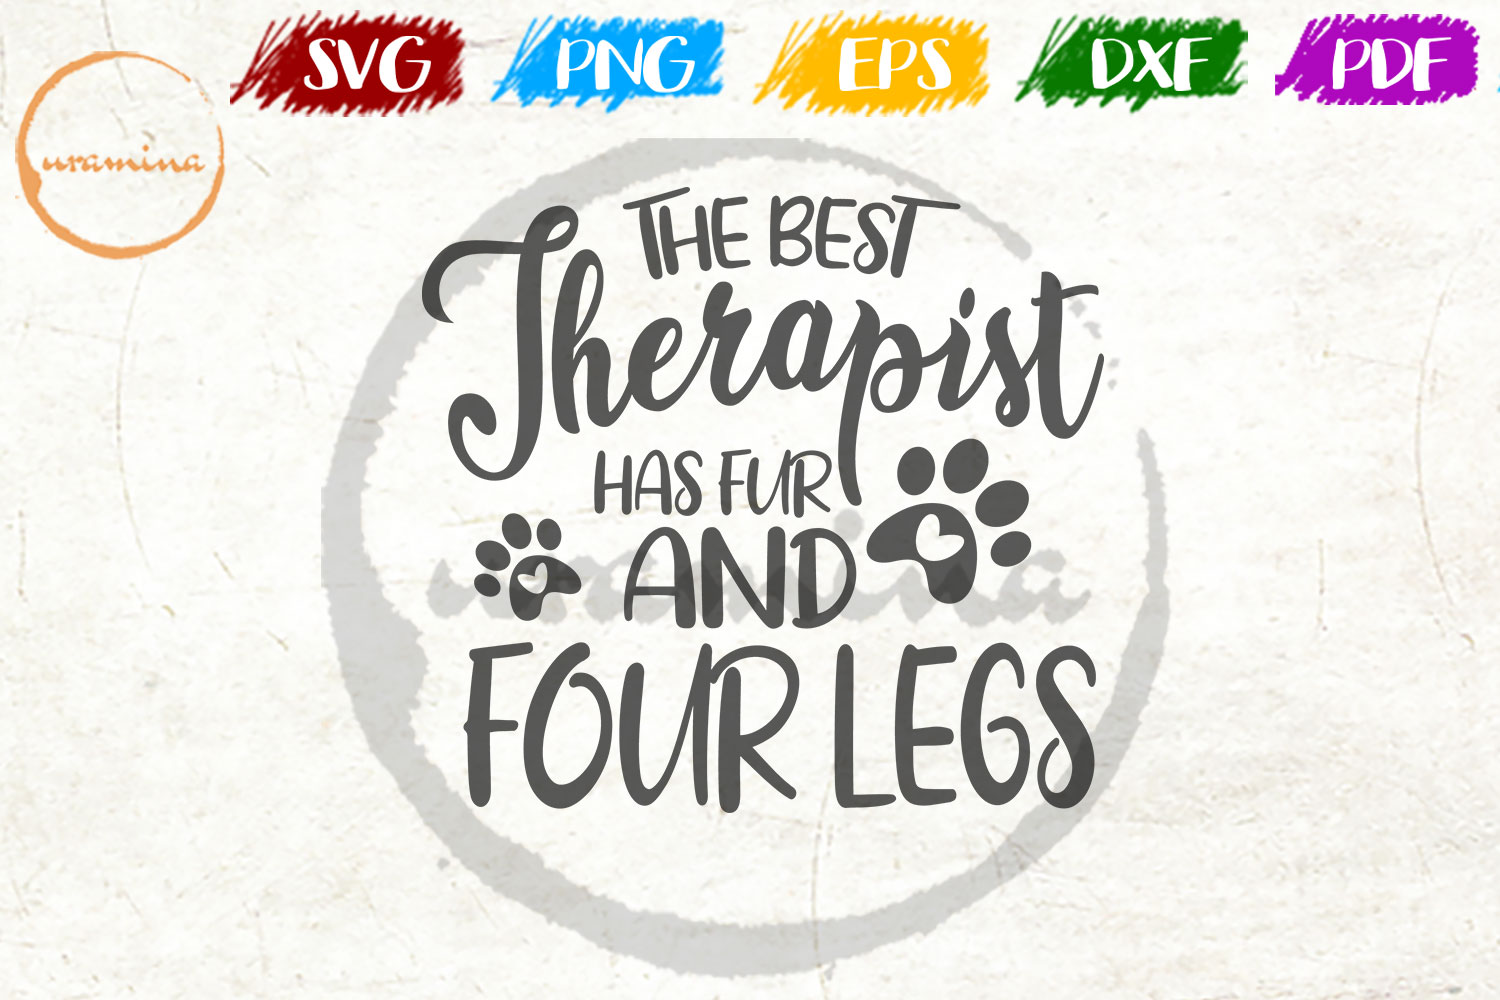 Download Free The Best Therapist Has Fur And Four Legs Graphic By Uramina Creative Fabrica for Cricut Explore, Silhouette and other cutting machines.